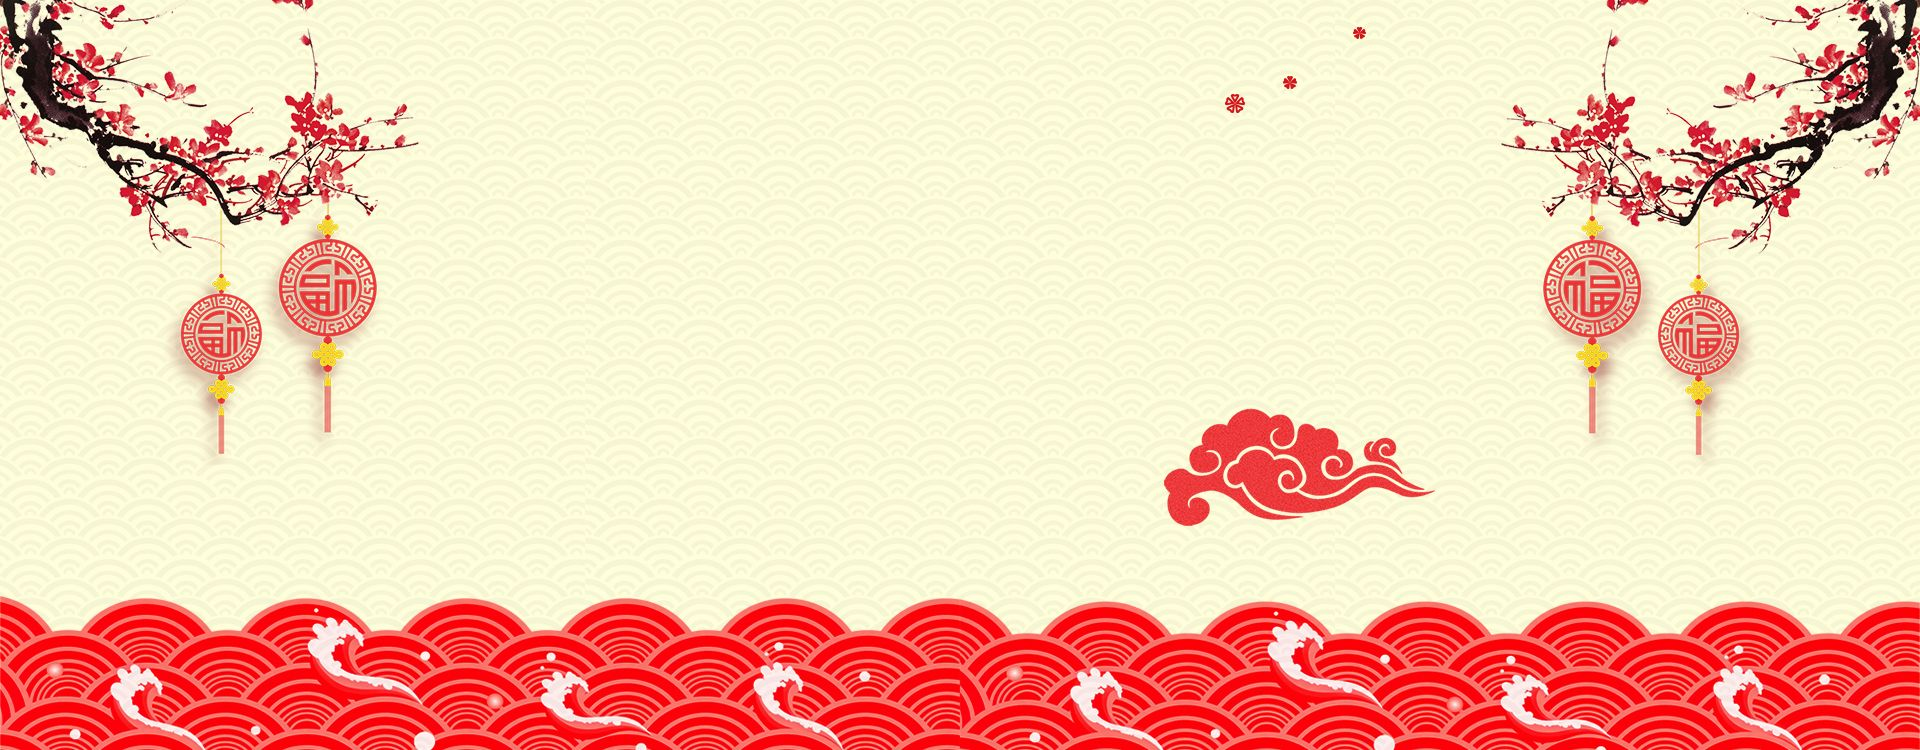 Chinese New Year Chinese Style Background in 2020